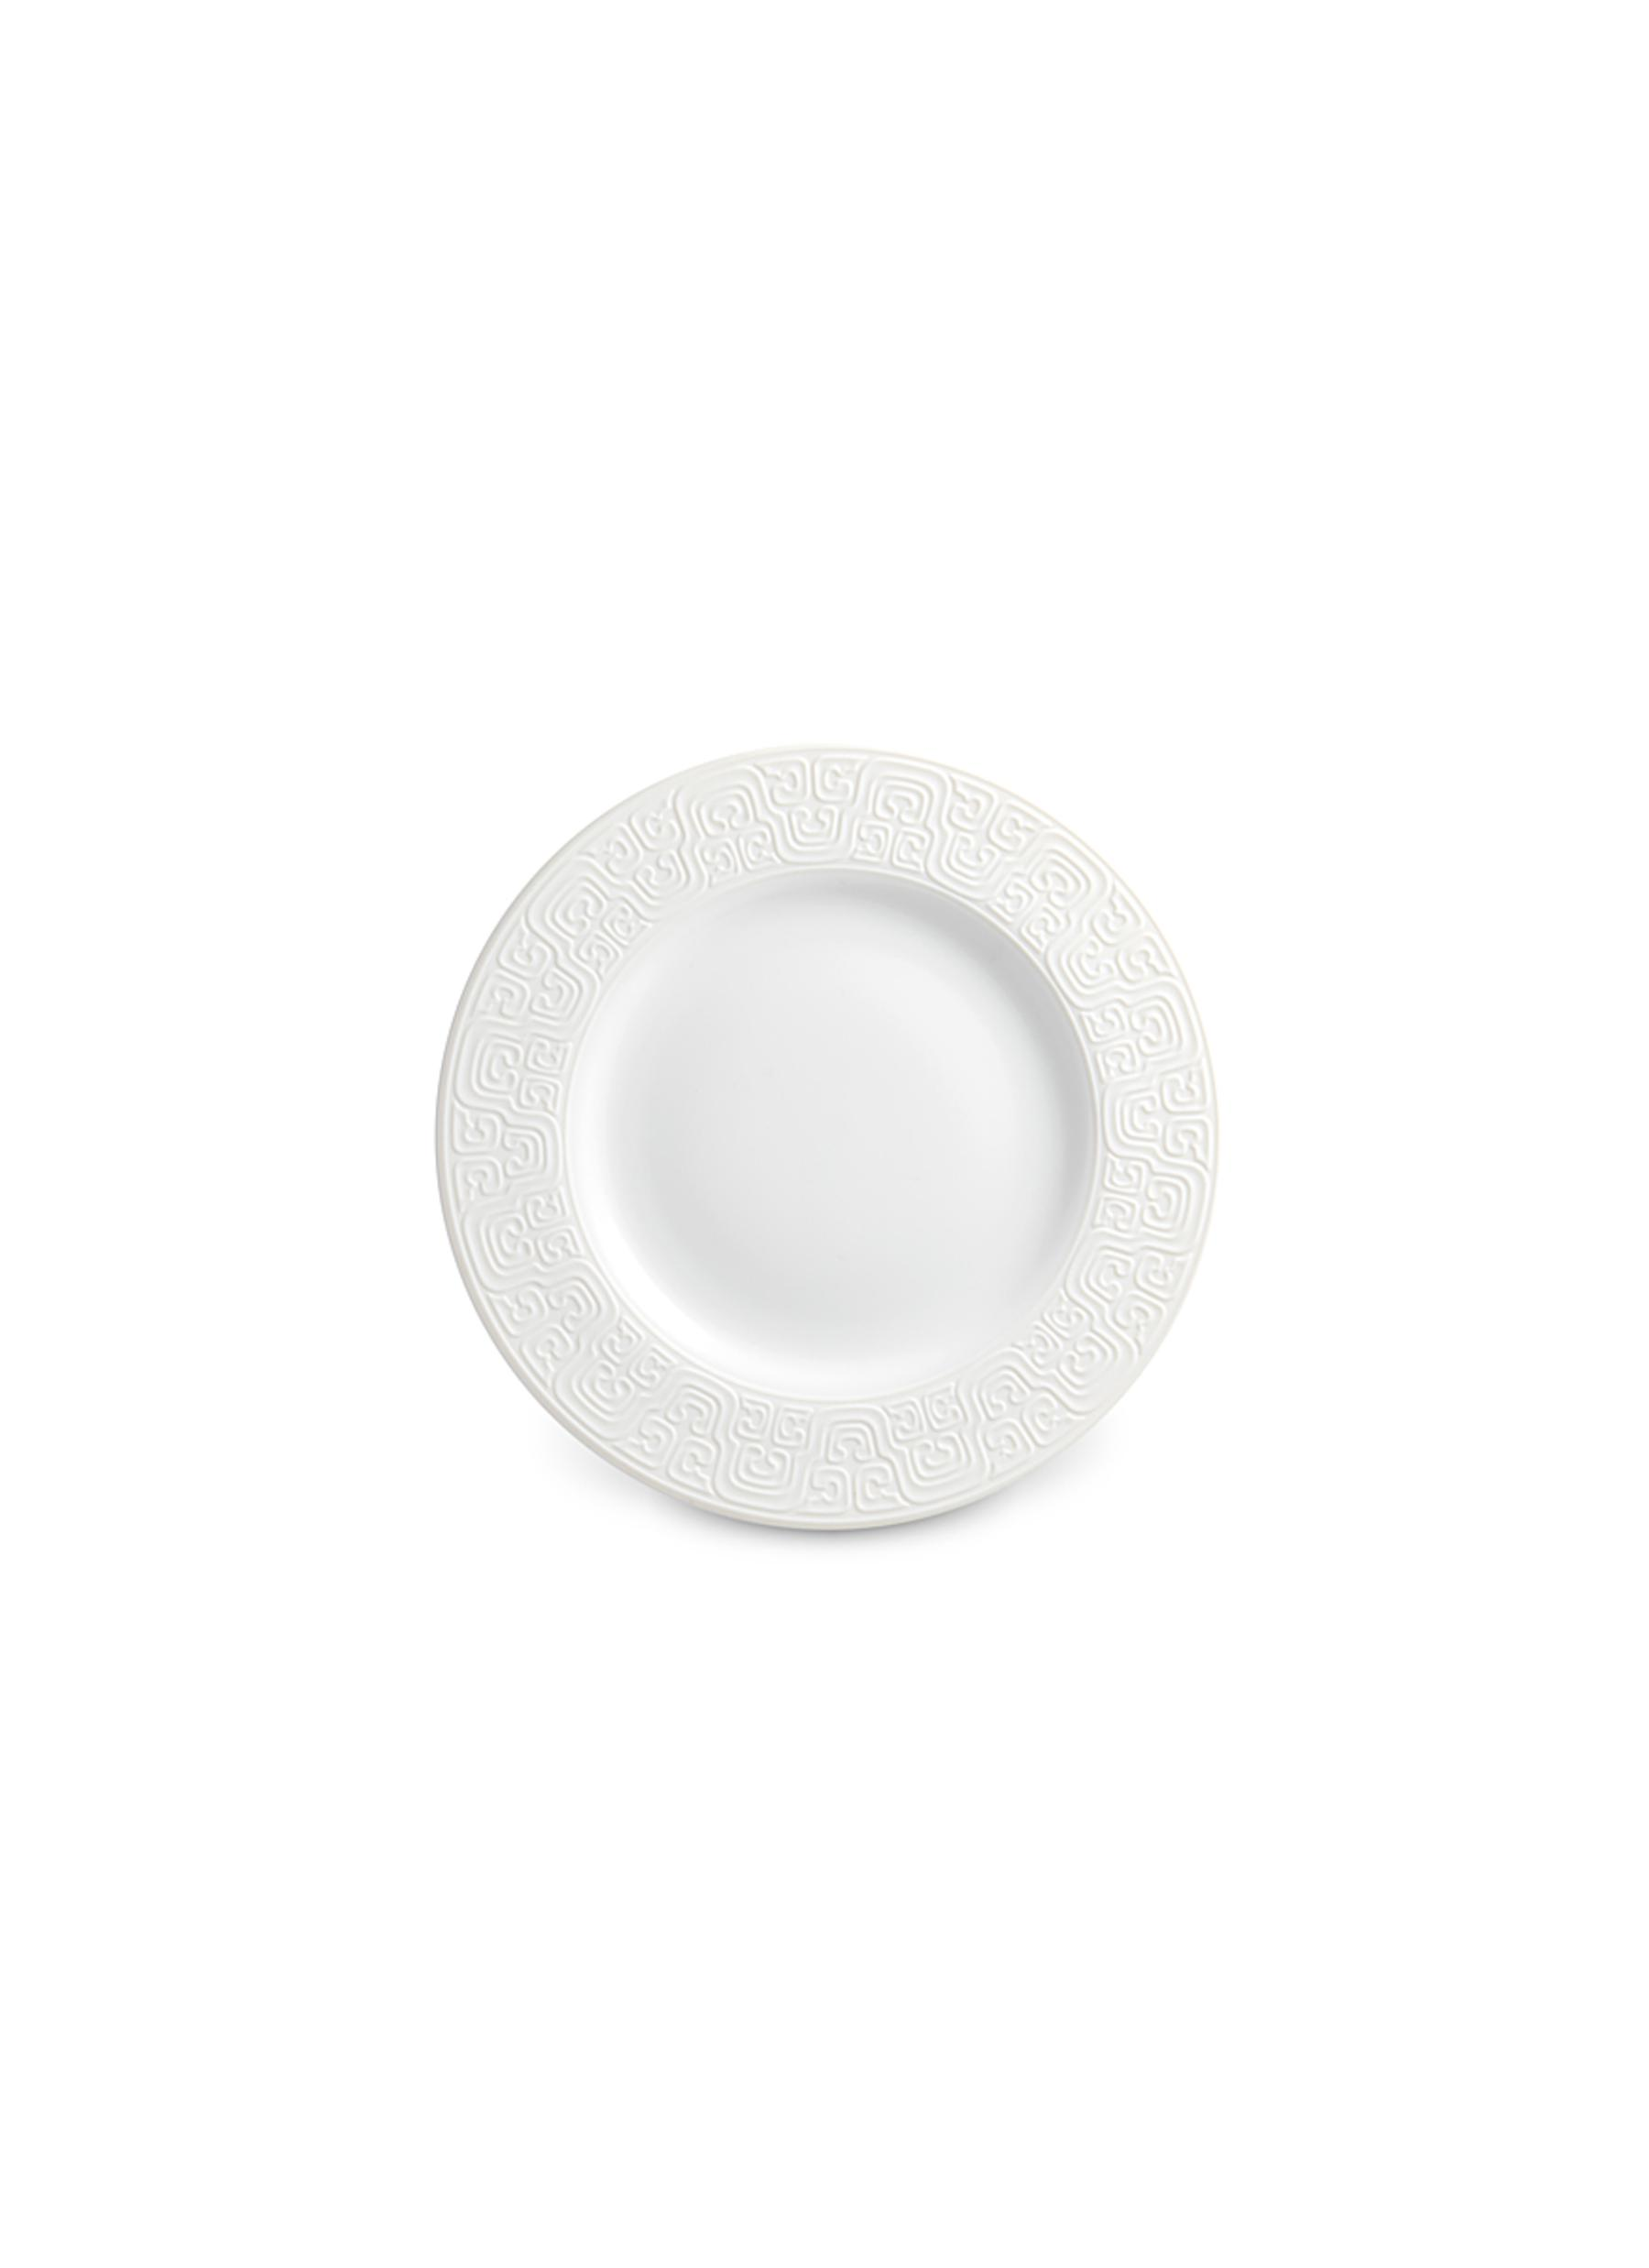 lobjet female soie tressee bread and butter plate white